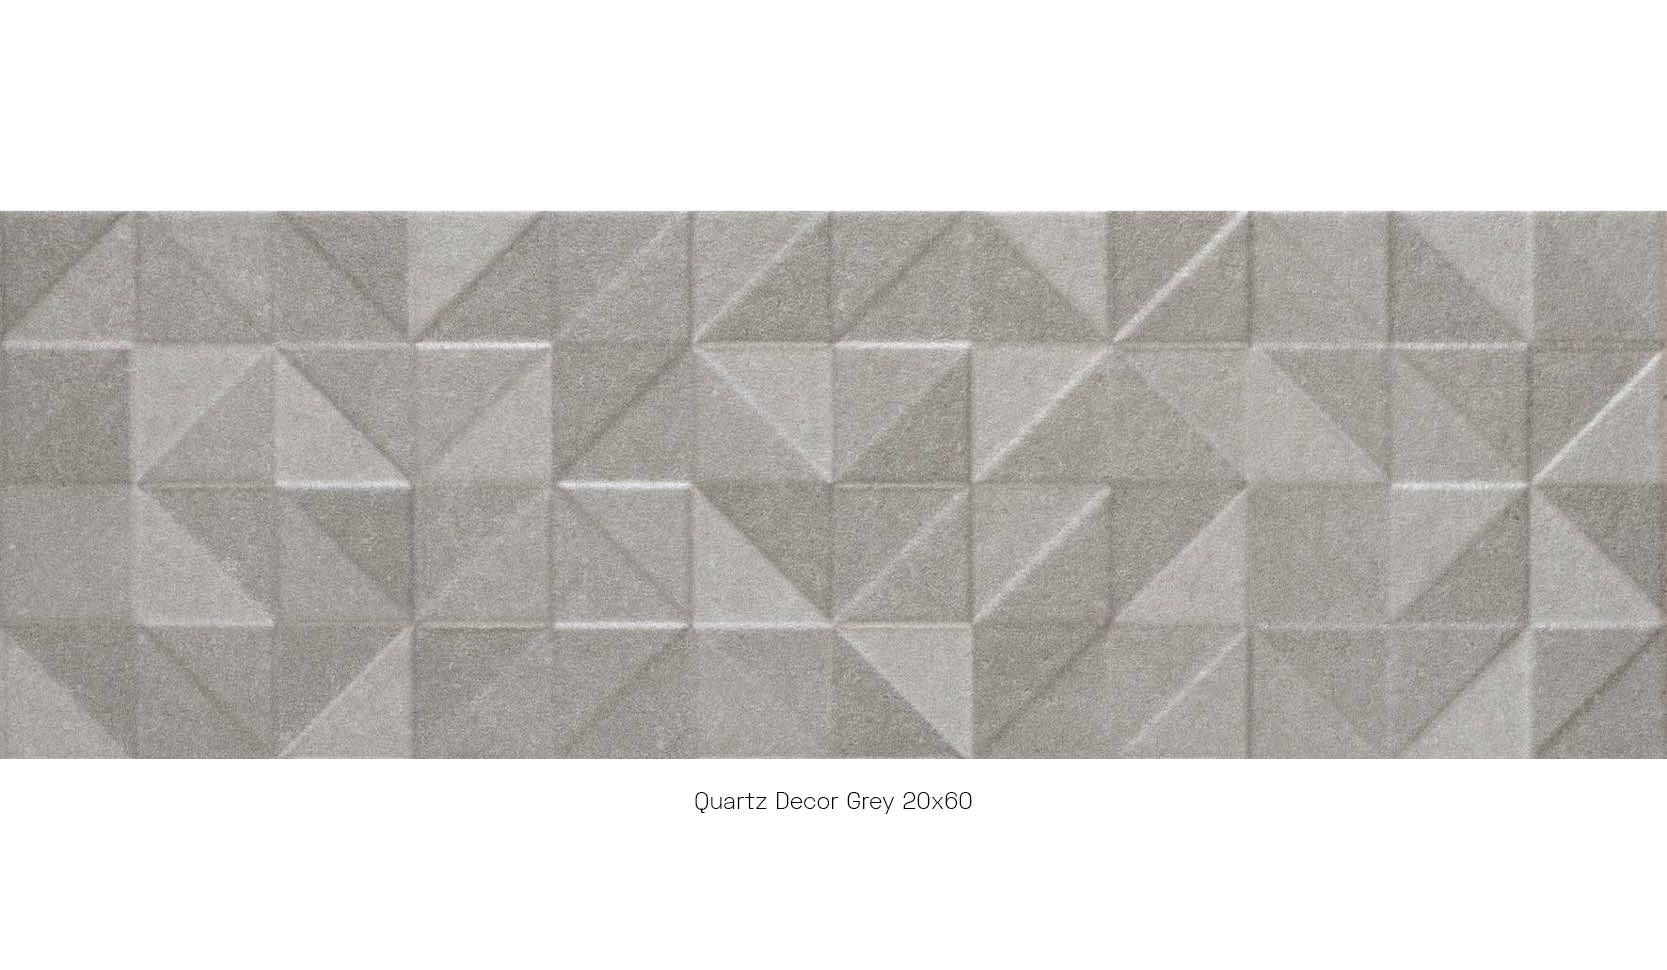 Quartz decor grey 20 x 60